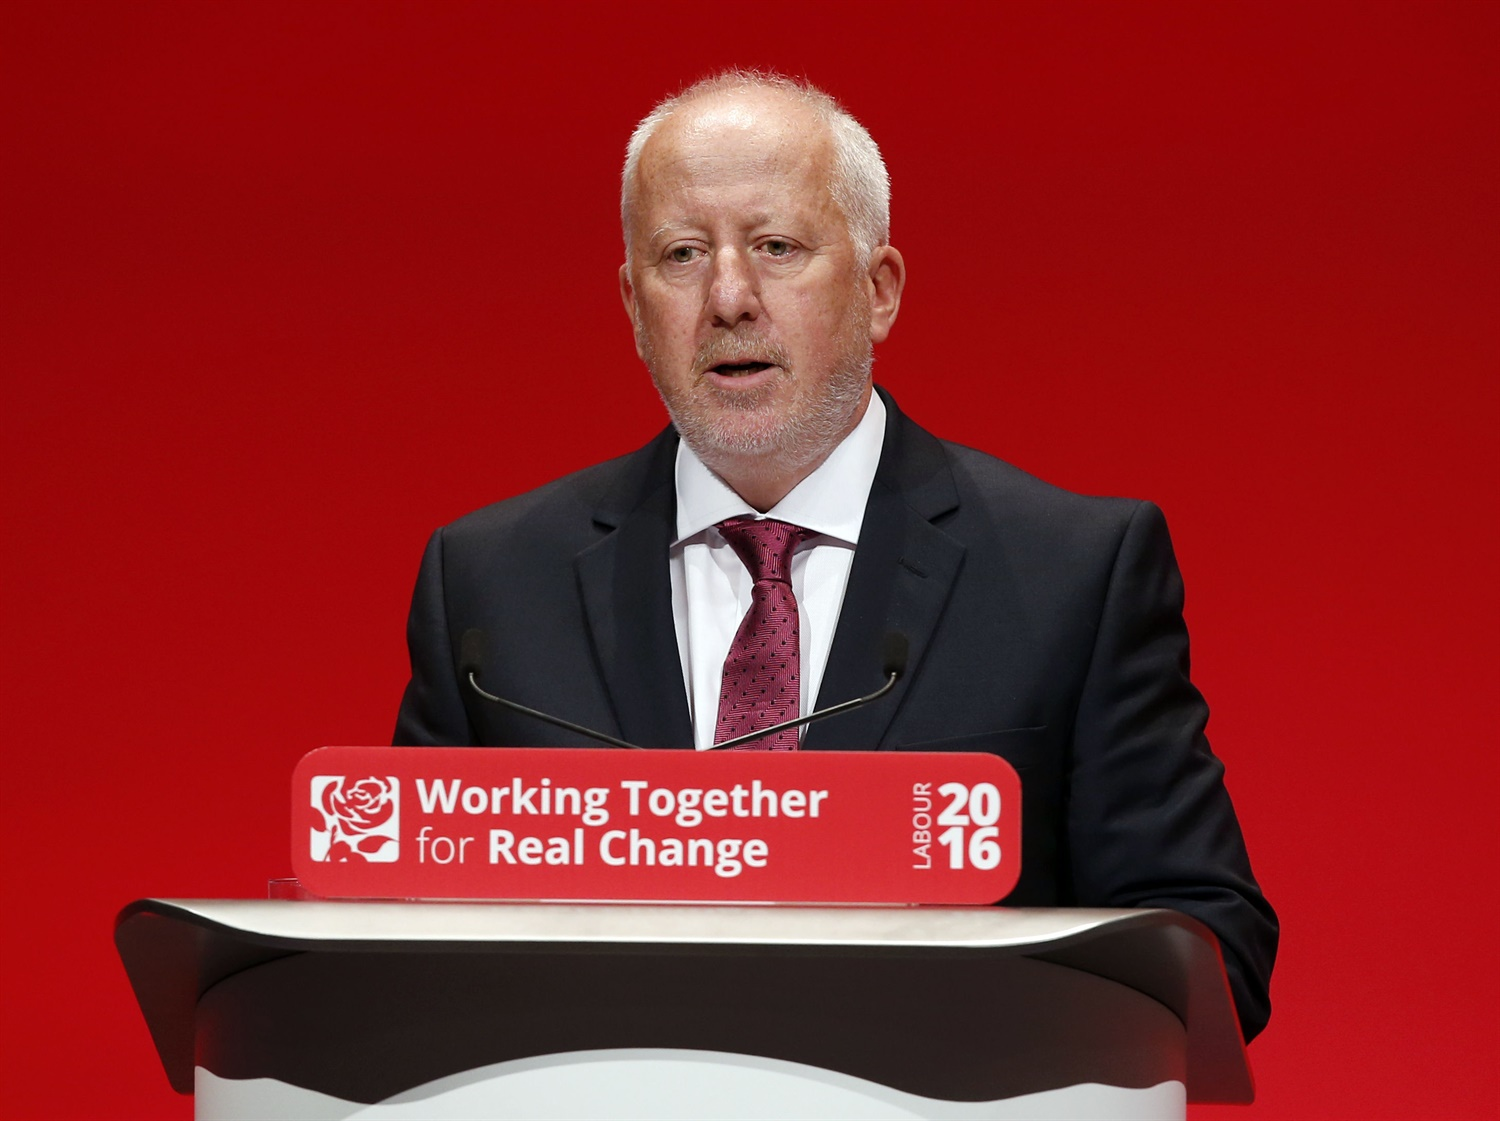 Shadow transport secretary McDonald considers extending control periods to 7 years